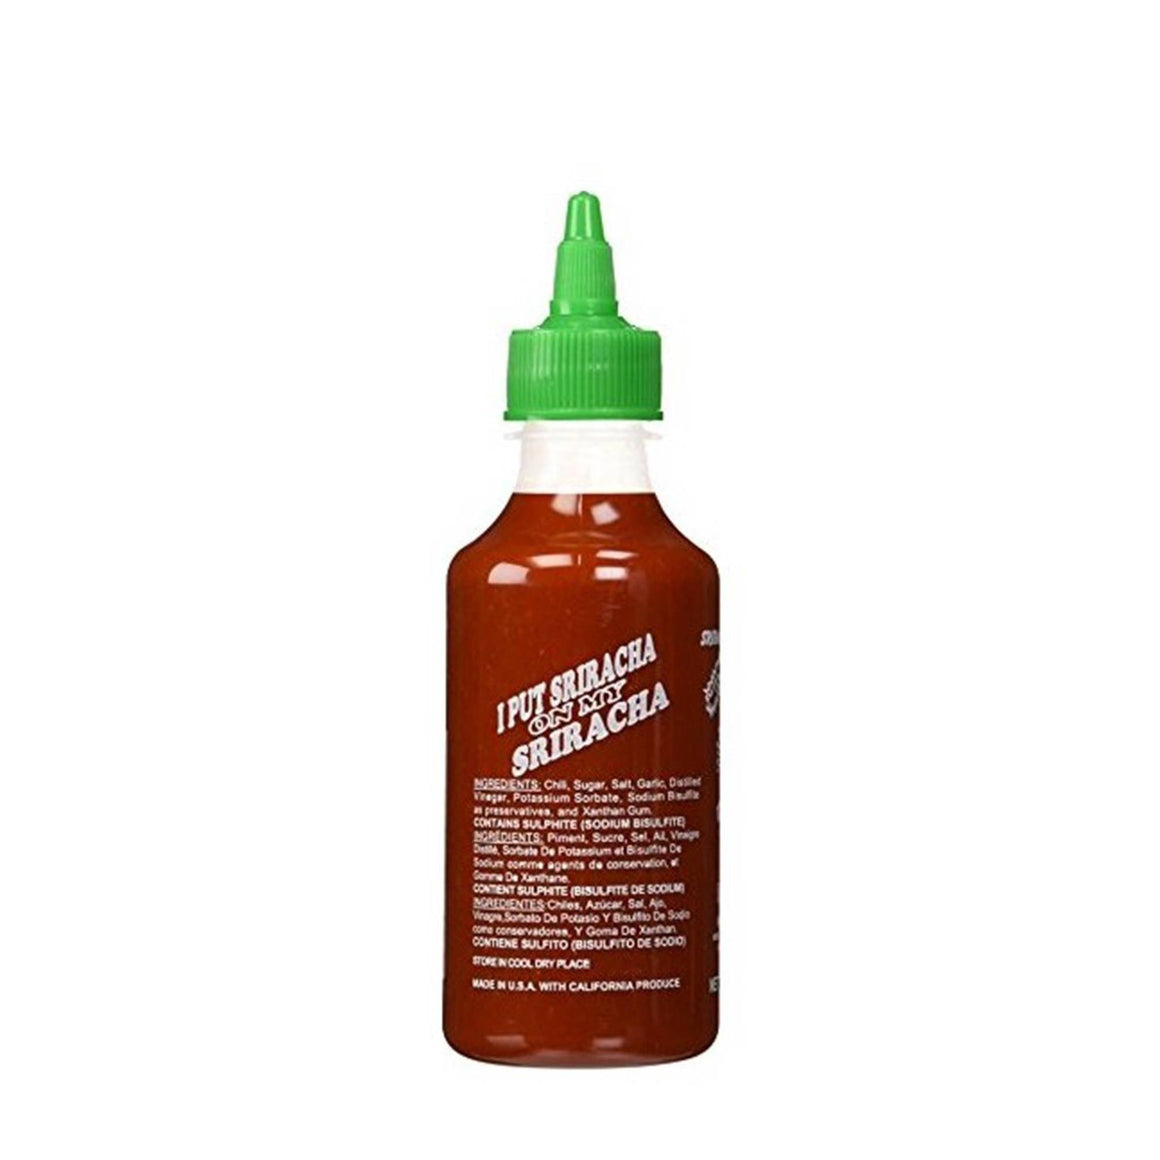 Food - Huy Fong Sriracha Hot Chili Sauce 9oz